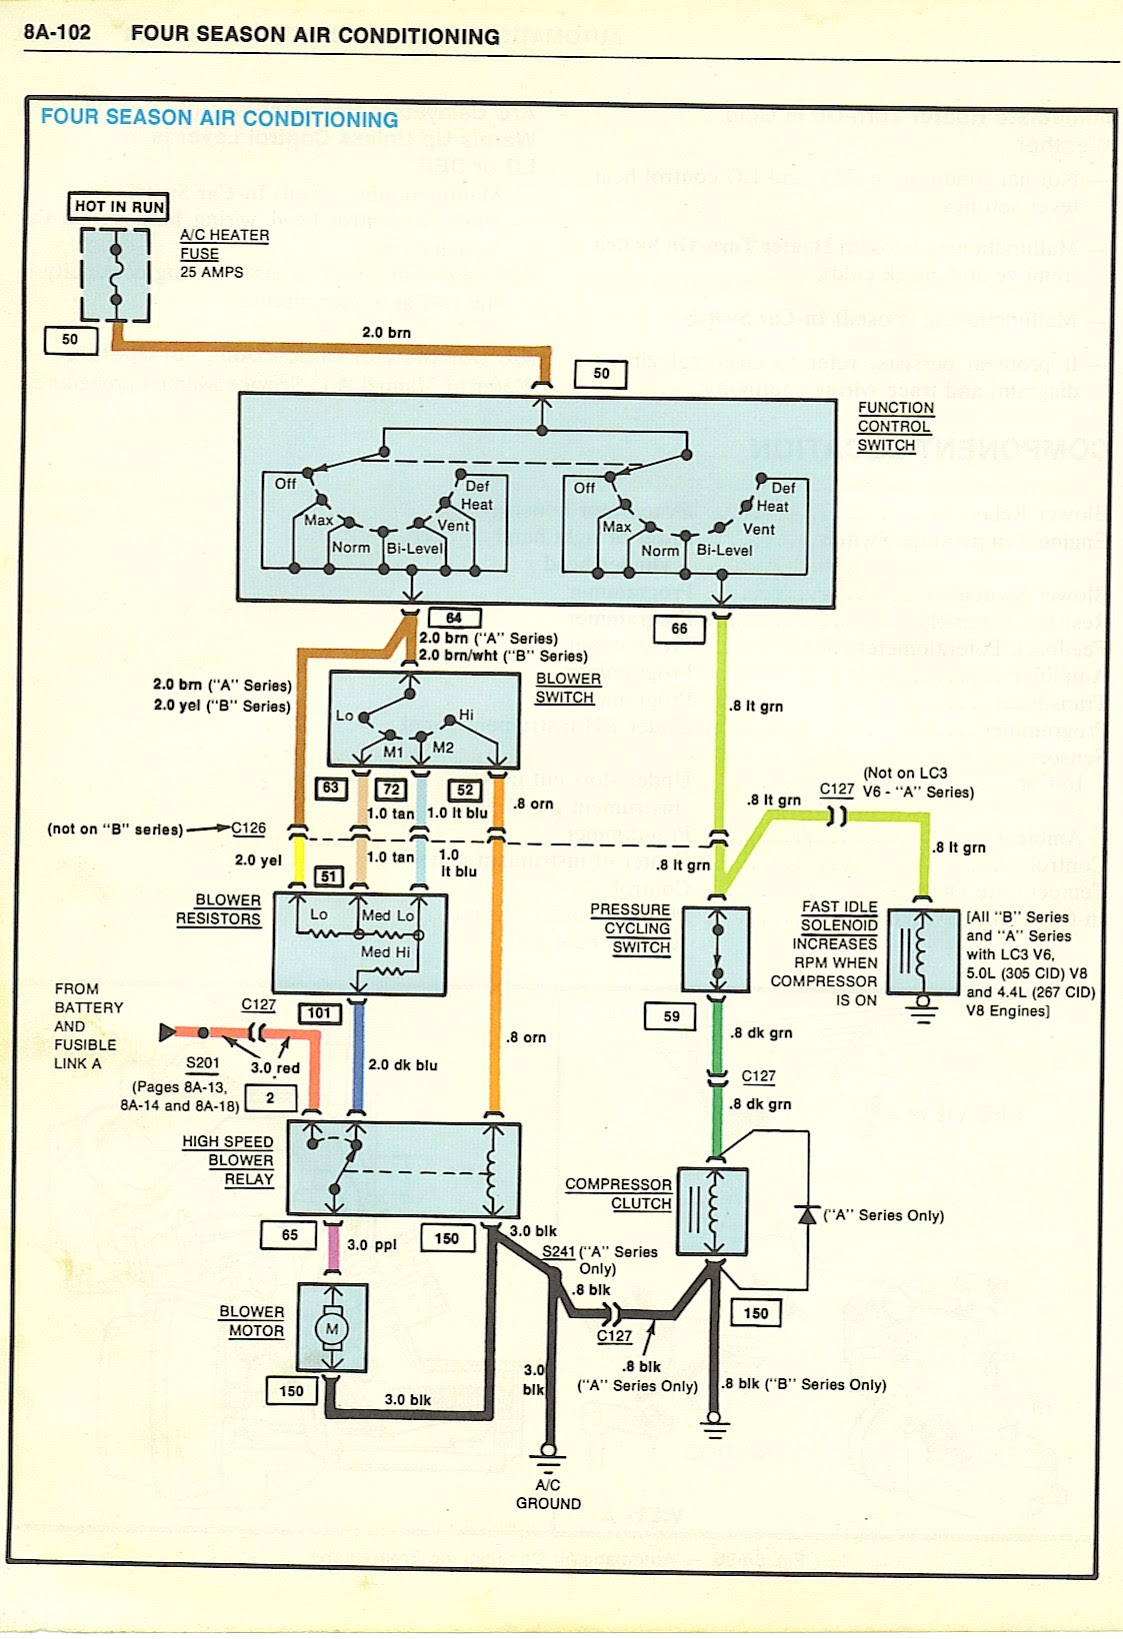 Dff7 1970 Chevelle Power Window Wiring Diagram 71 Wiring Diagram Library